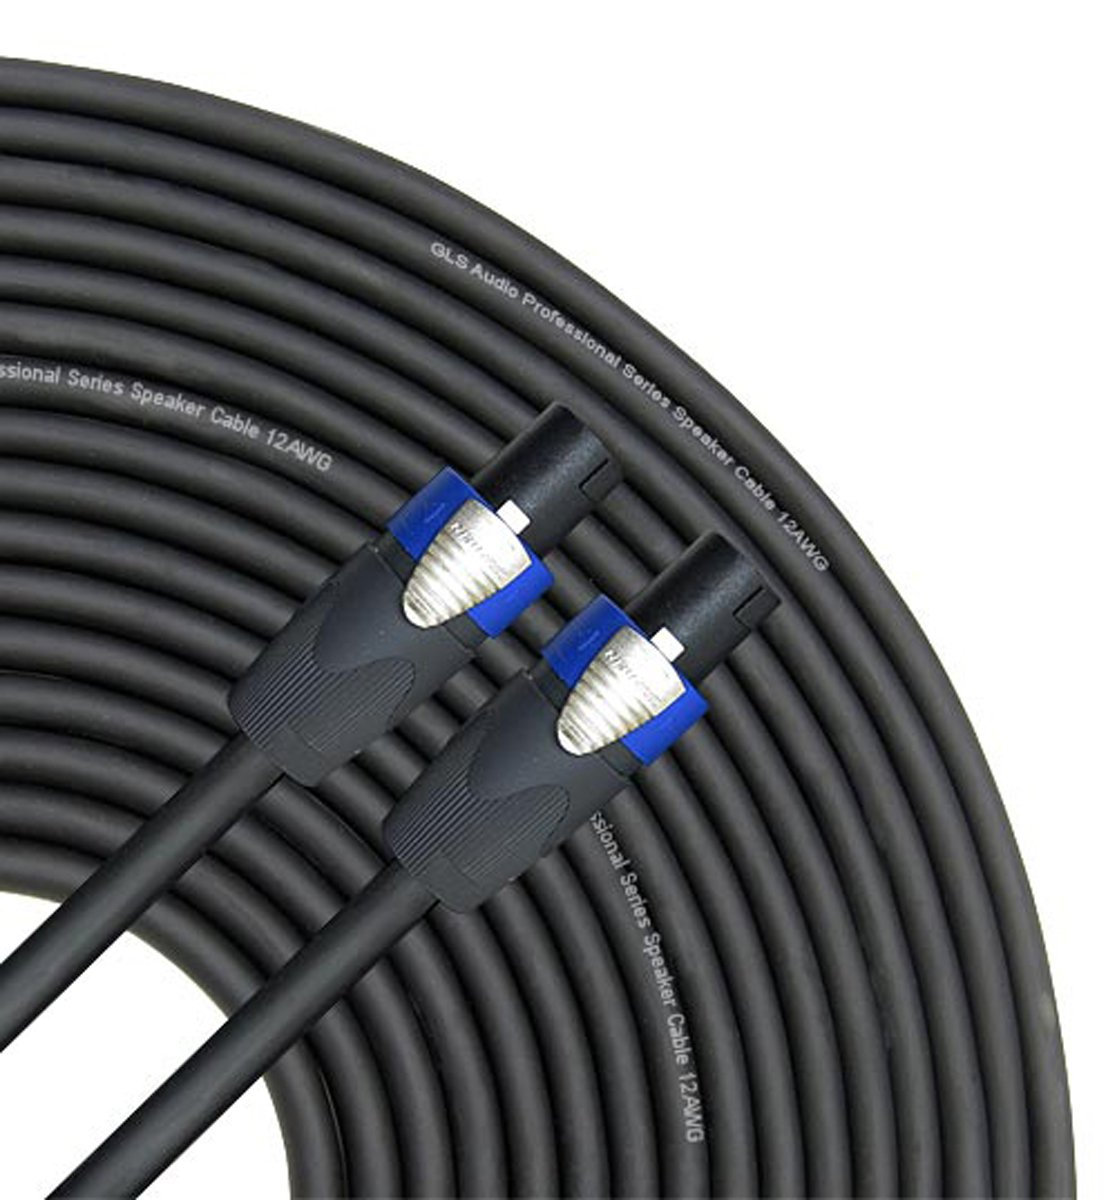 GLS Audio 50 feet Speaker Cable 12AWG Patch Cords - 50 ft Speakon to Speakon Professional Cables Black Neutrik NL4FX (NL4FC) 12 Gauge Wire - Pro 50' Speak-on Cord 12G - Single